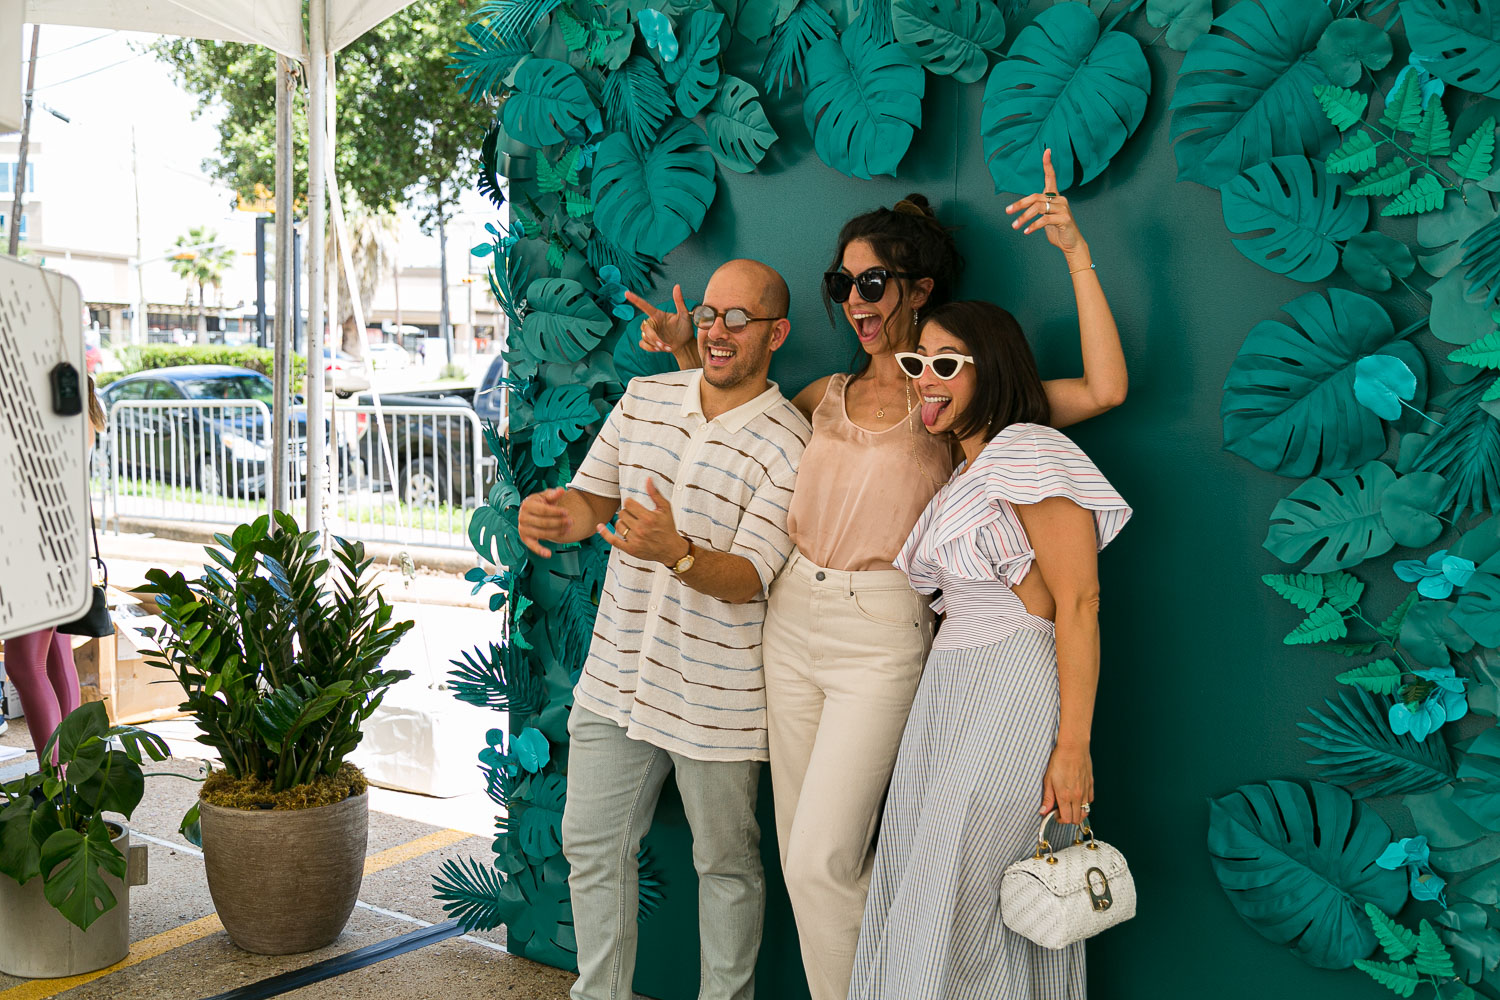 Planned With coordinates Sweetgreen Montrose Houston opening, incorporating Dark Teal, a Top Event Color Trends of 2020.